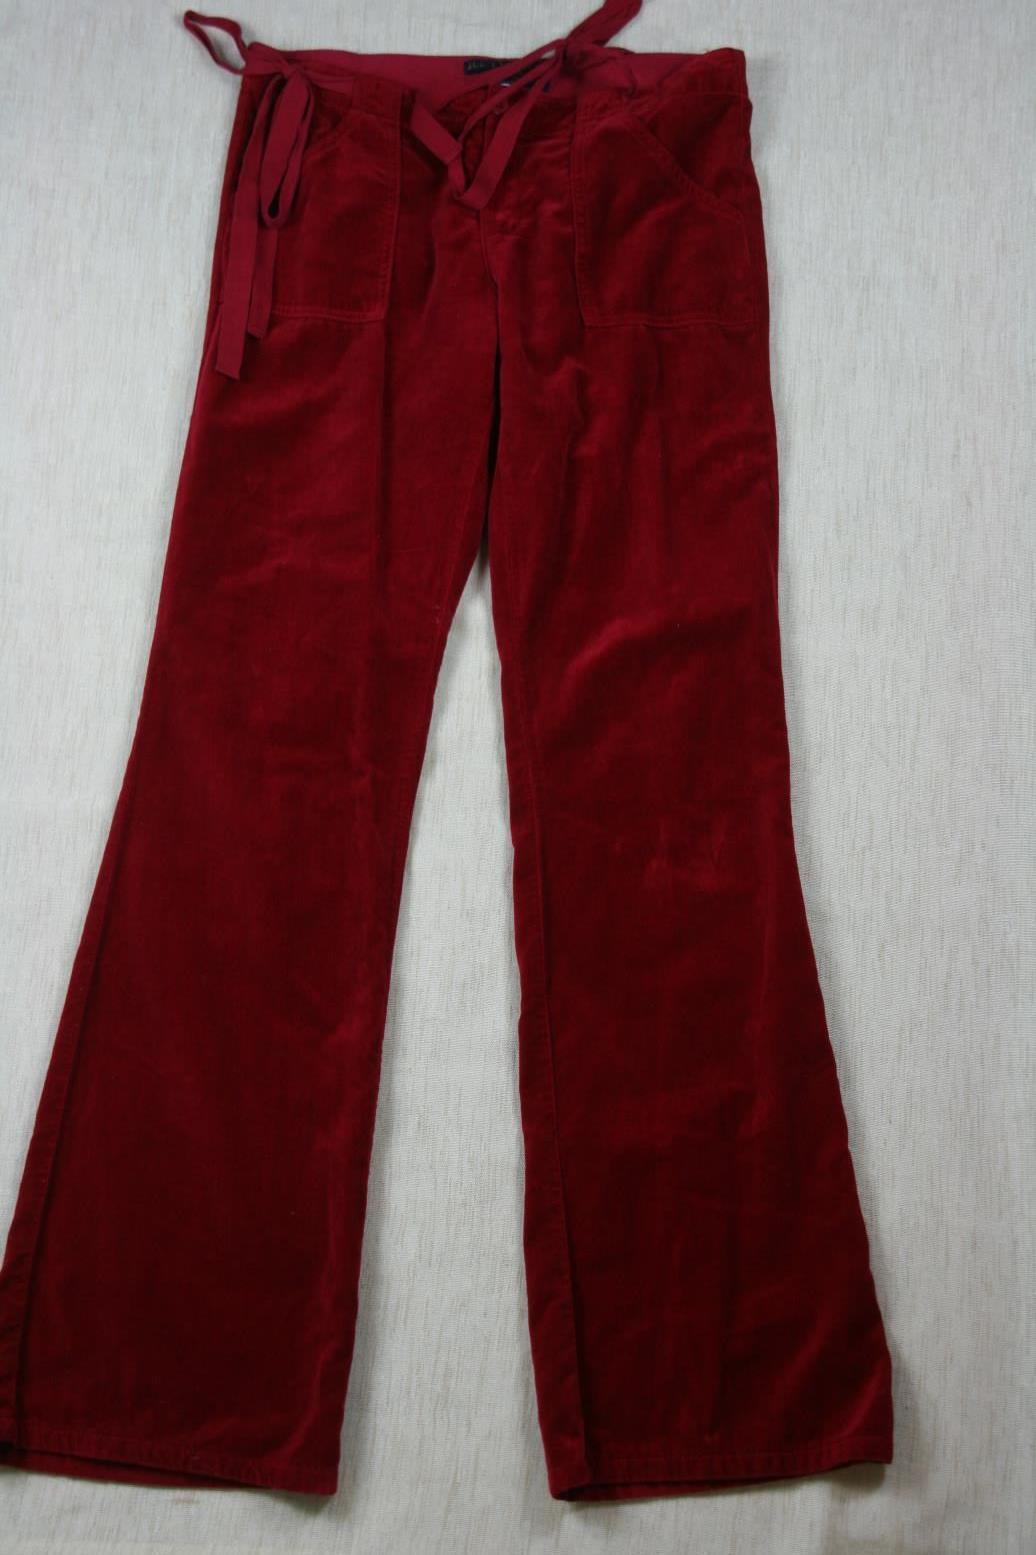 Juicy Couture Womens Velvet Velour  Pants Sz 29 X 34 image 2